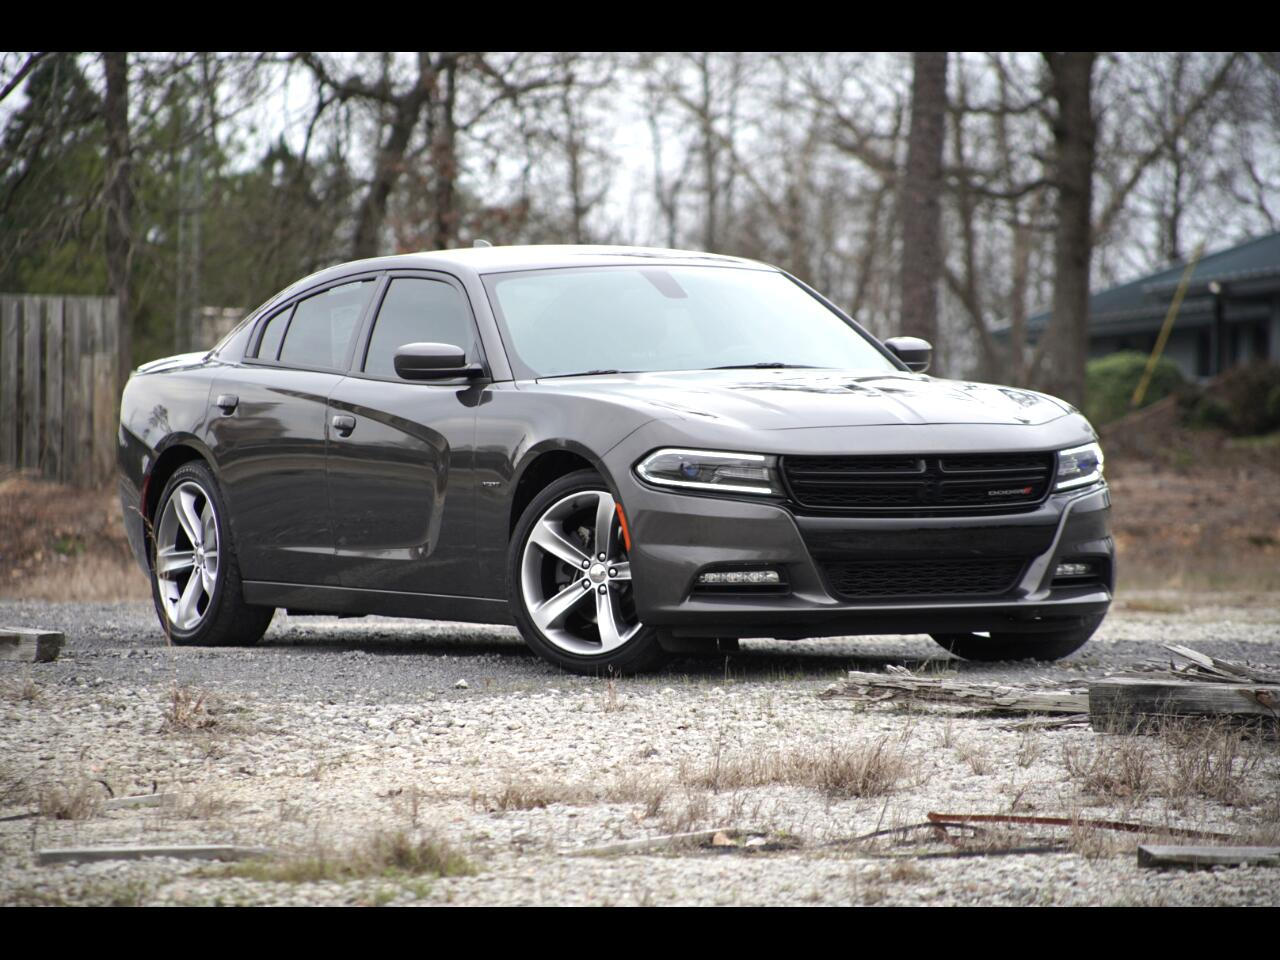 2015 Dodge Charger 4DR Sedan RT Hemi 5.7L